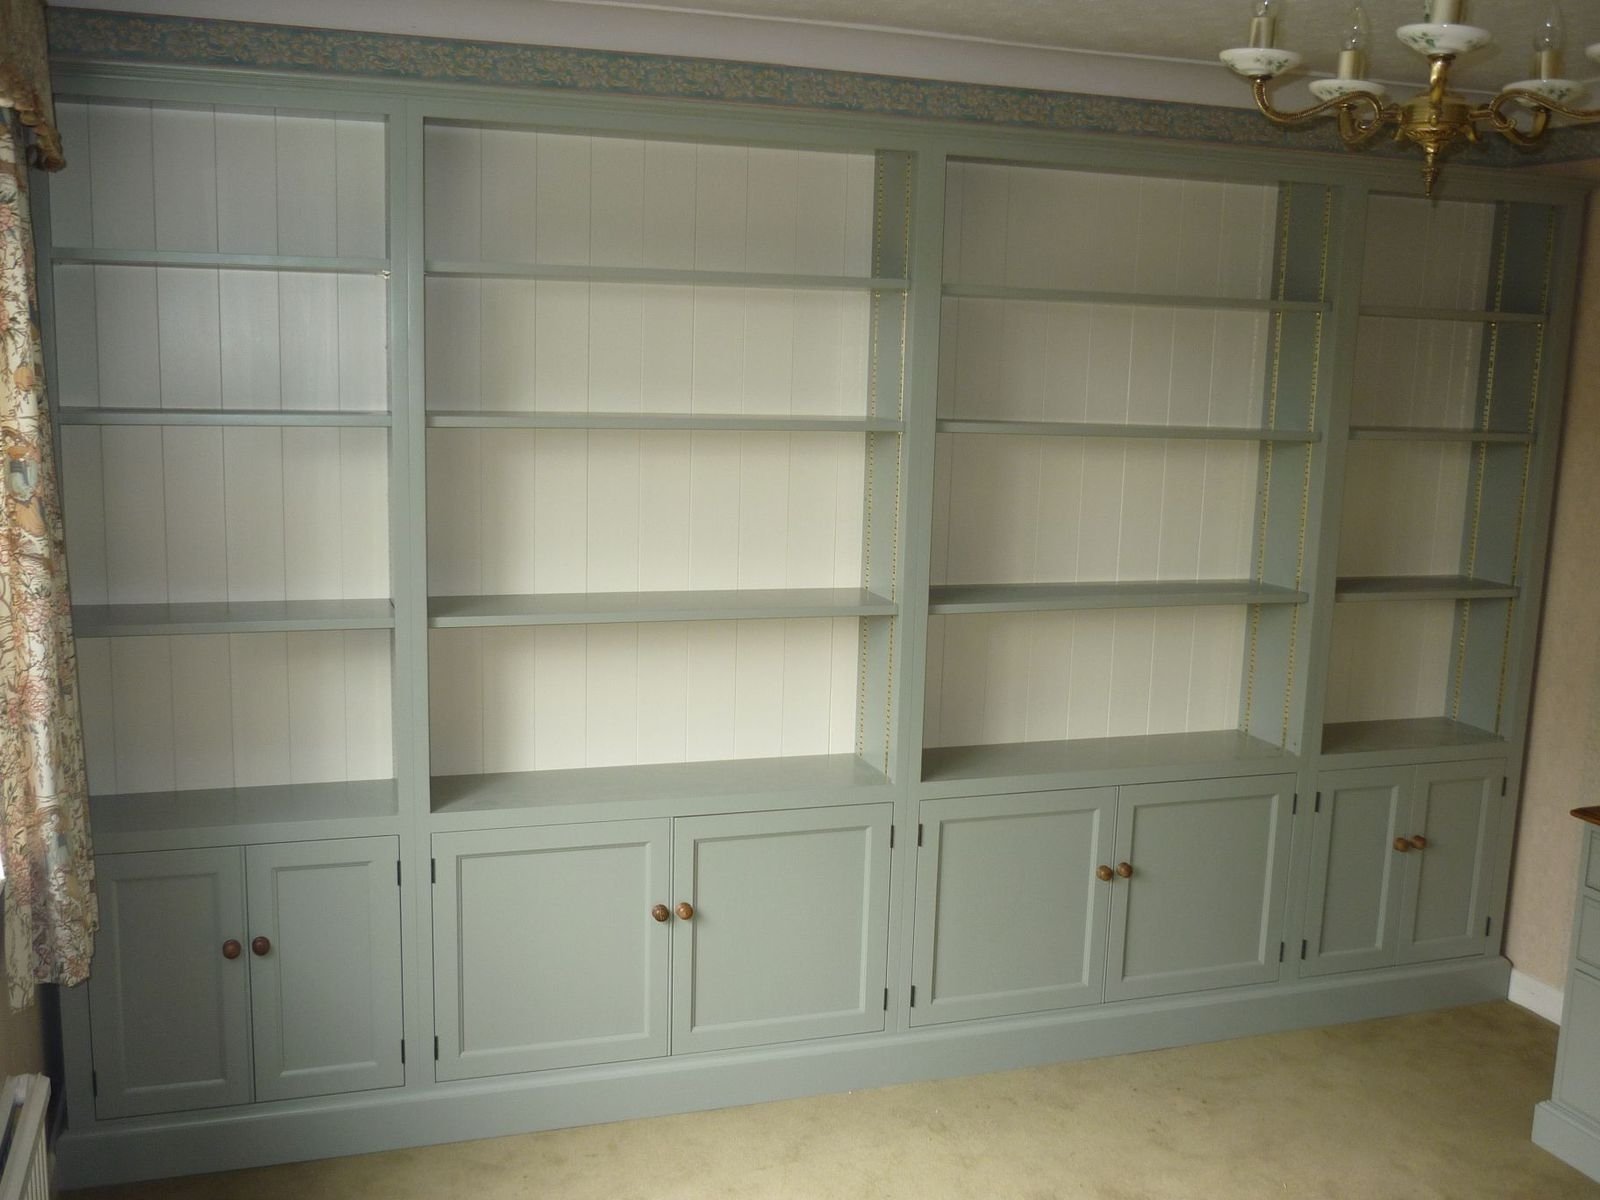 Bespoke Office Furniture With Huge Bookcase – Painted – Bookcases For Fashionable Bespoke Bookcases (View 11 of 15)